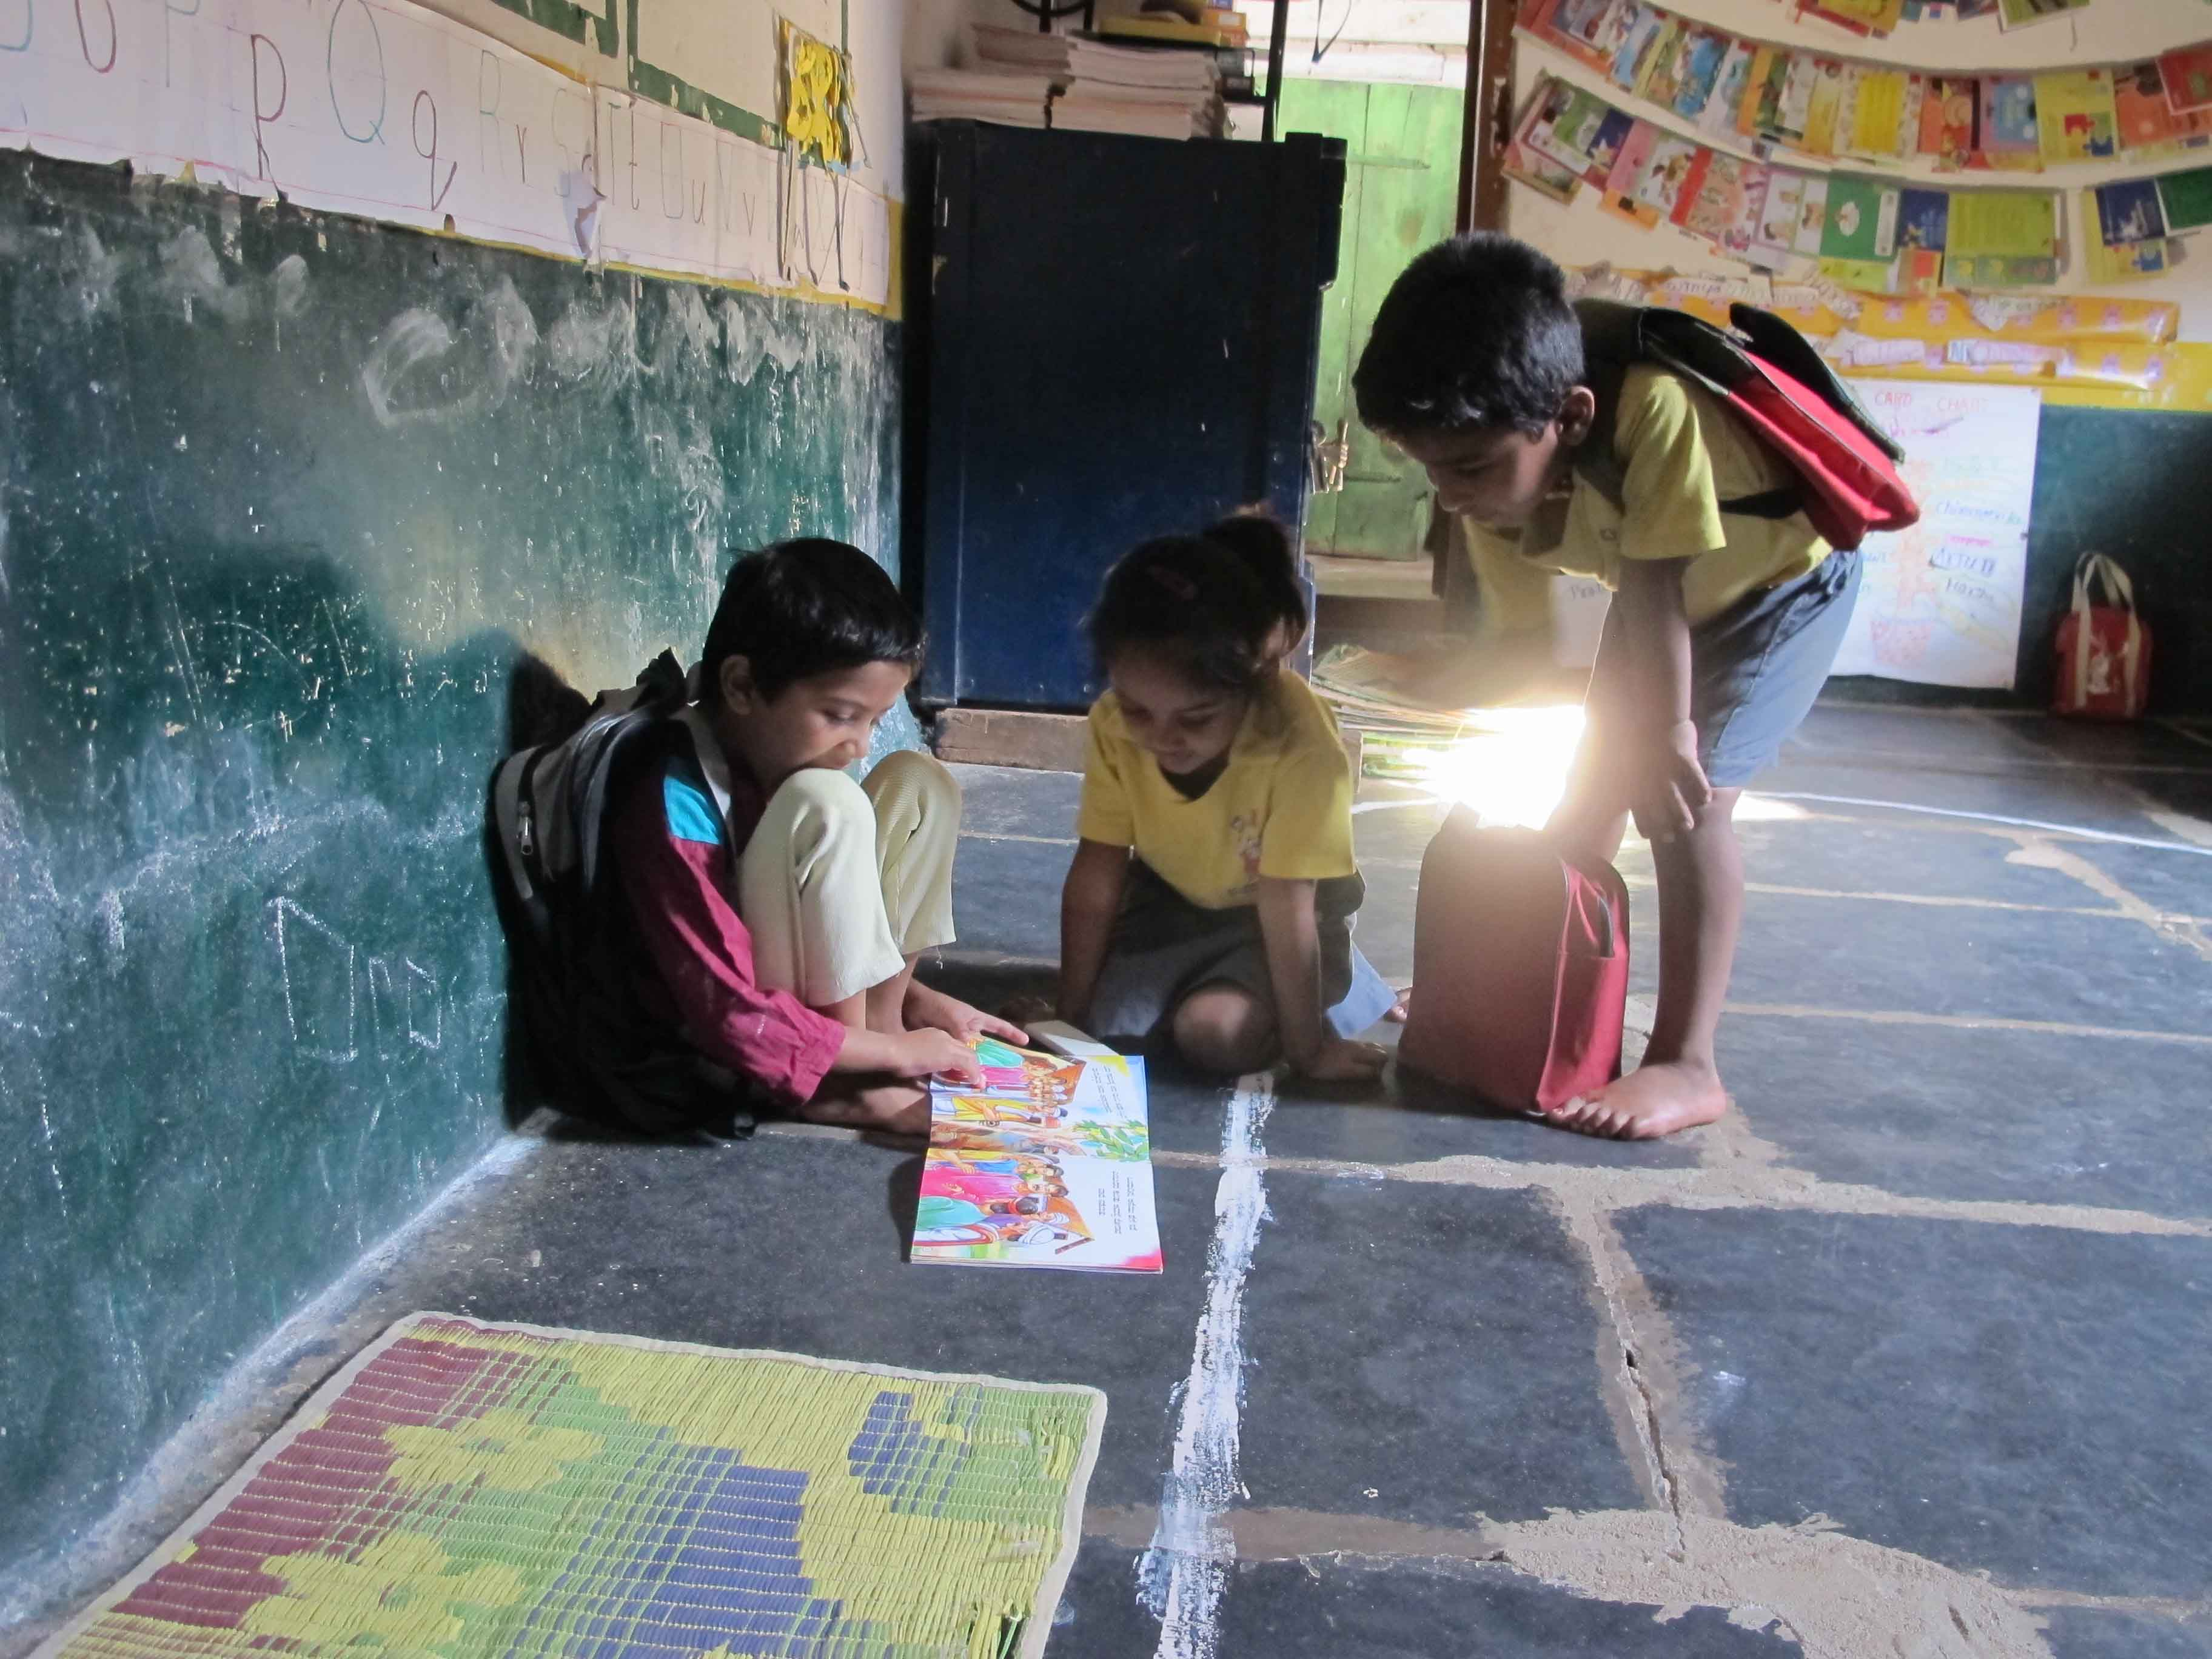 With around 63 pc of India's population residing in rural areas, there is a need to fix the problems associated with educating the underprivileged